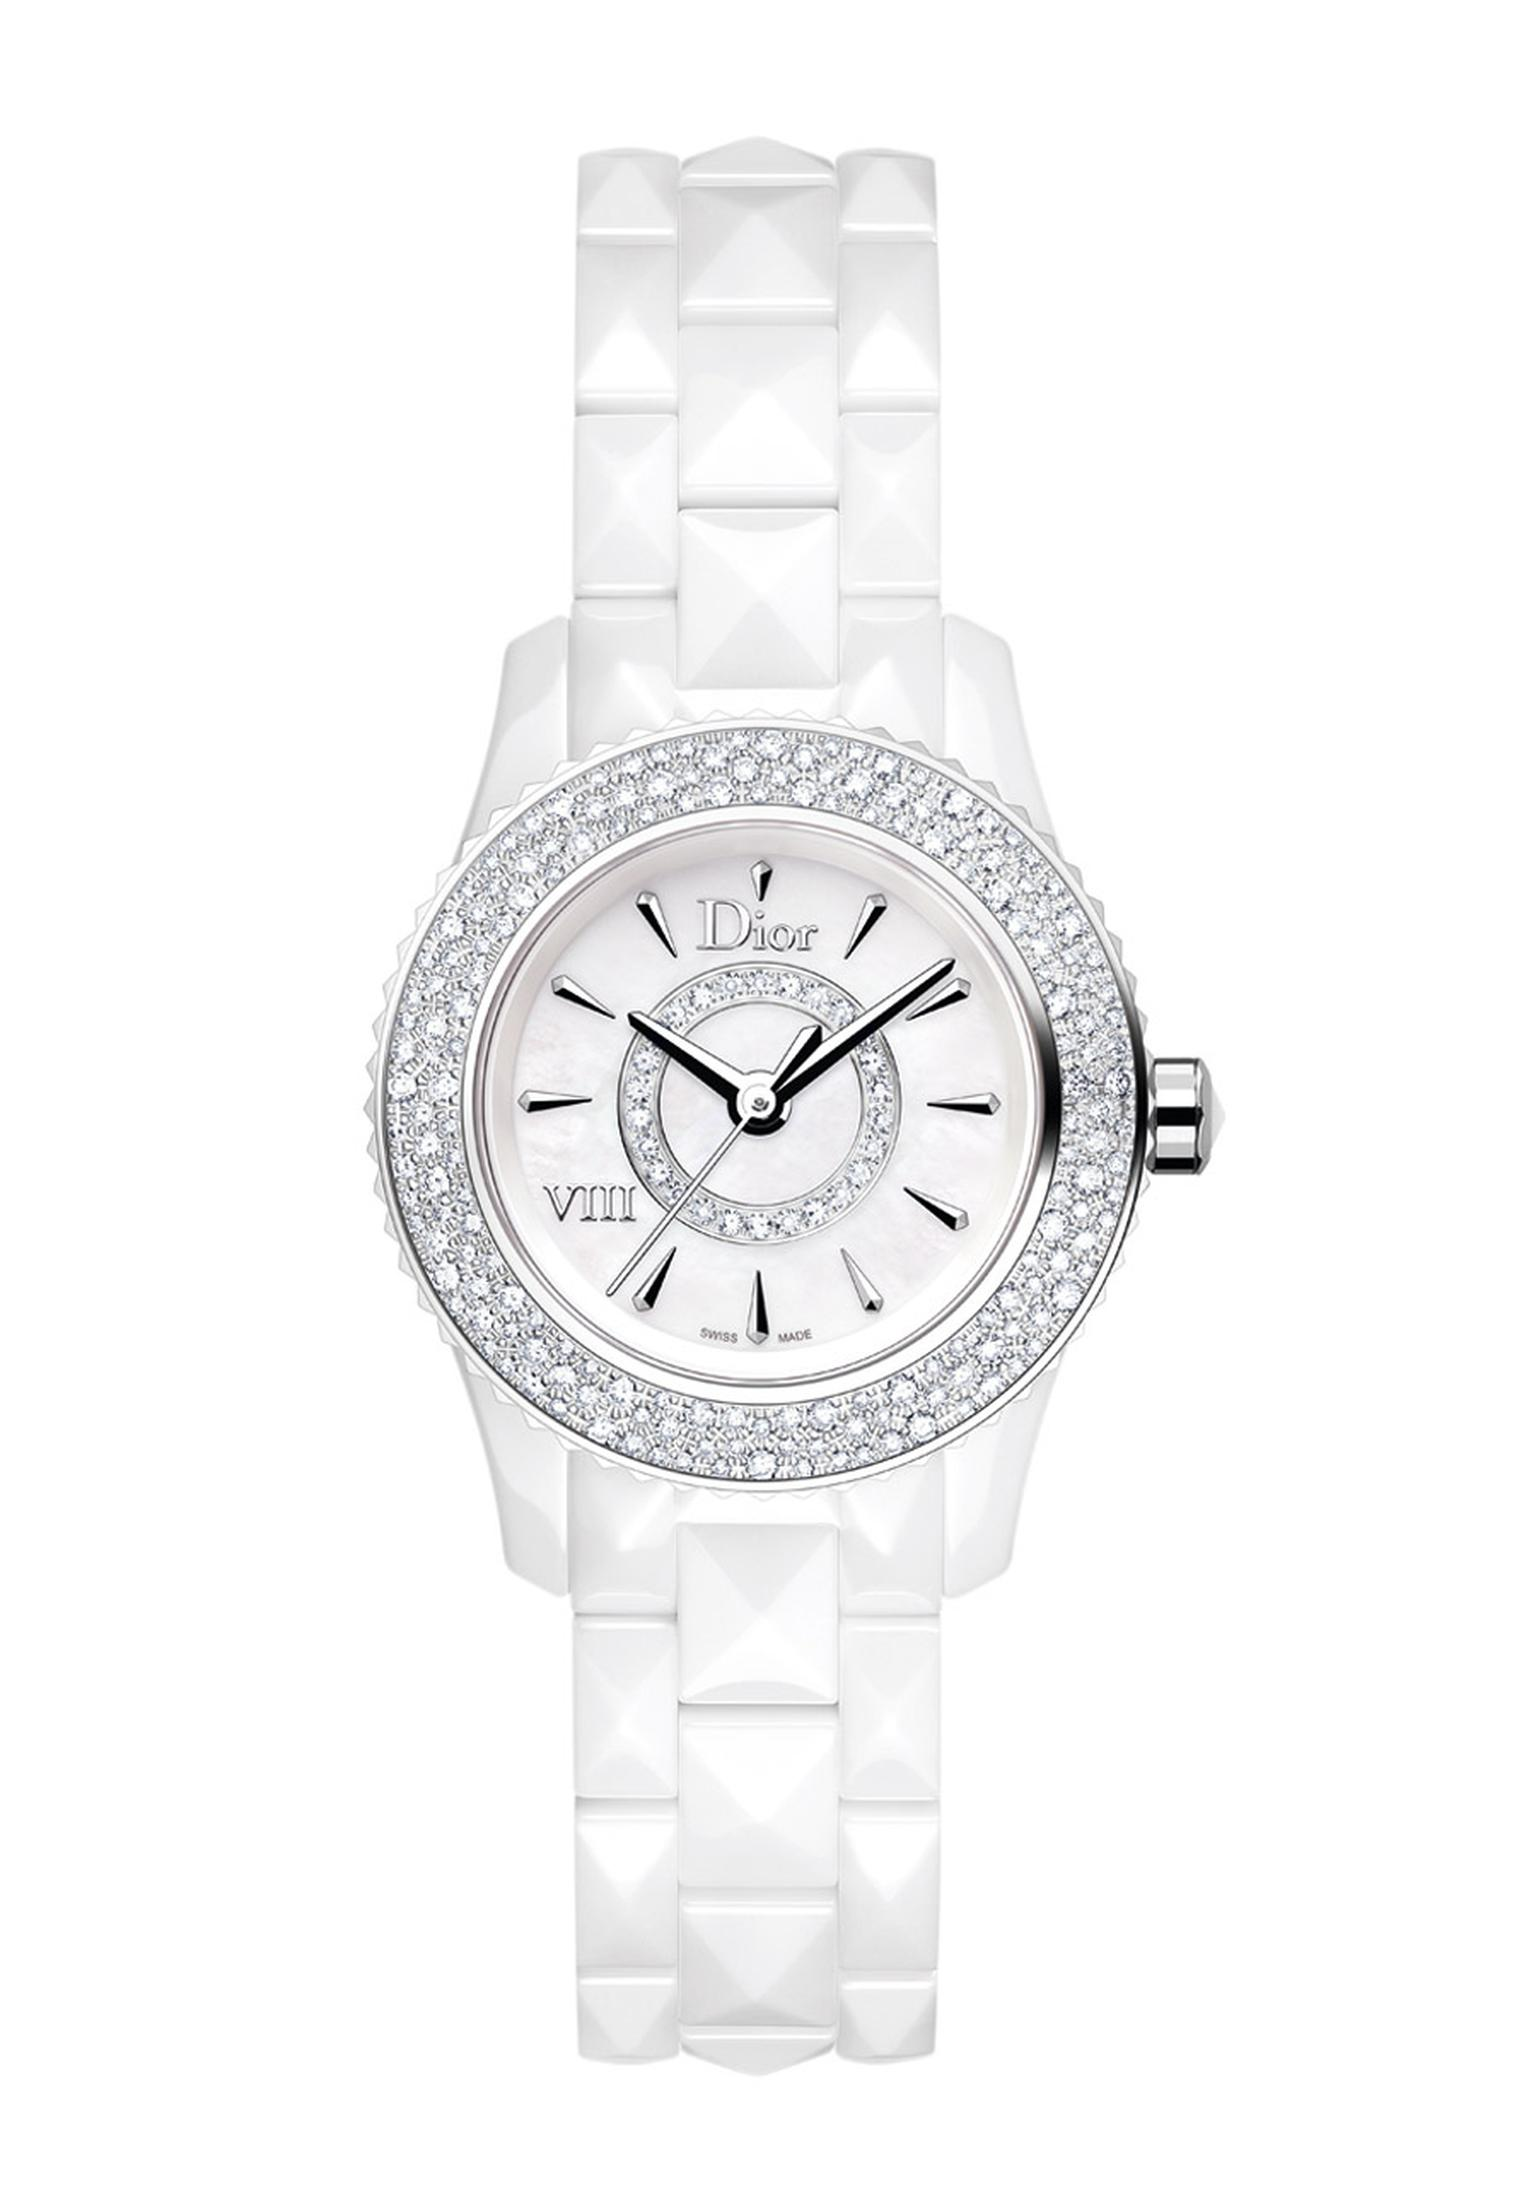 DIOR-VIII-WHITE-QUARTZ-DIAMOND-SNOW-SET-BEZEL-28mm